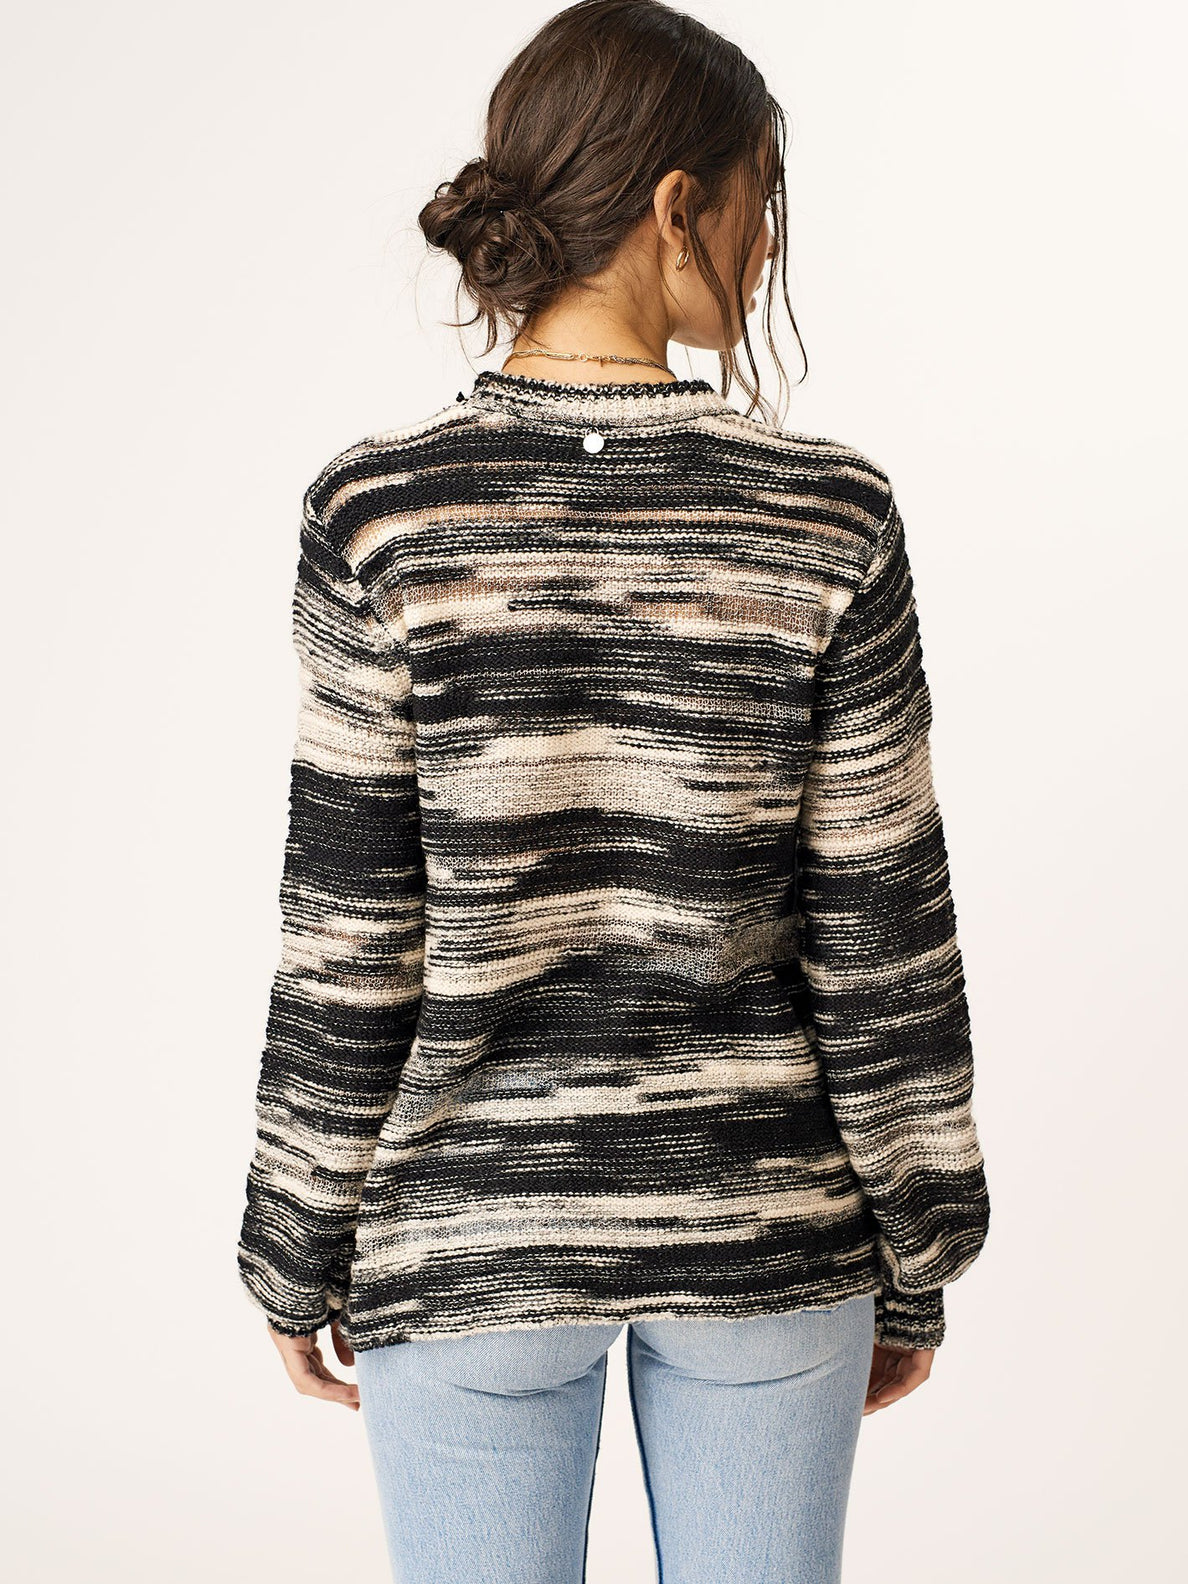 Foiled Again Sweater In Black Combo, Back View